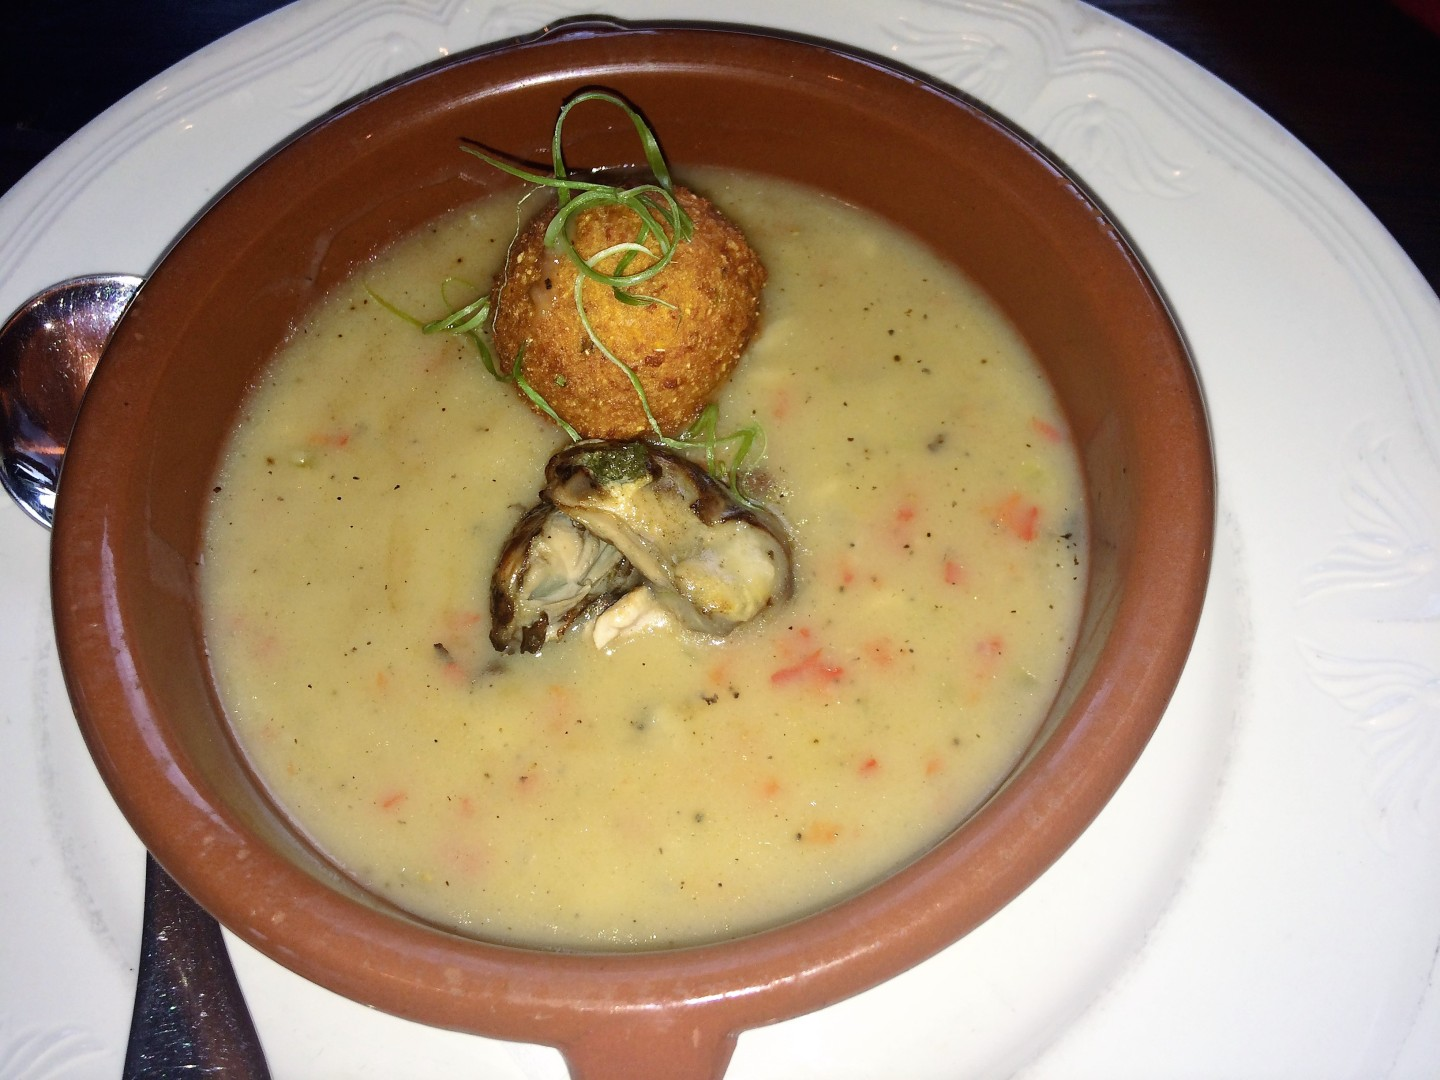 Smoked oyster stew with orange brandy and sweet potato hush puppy